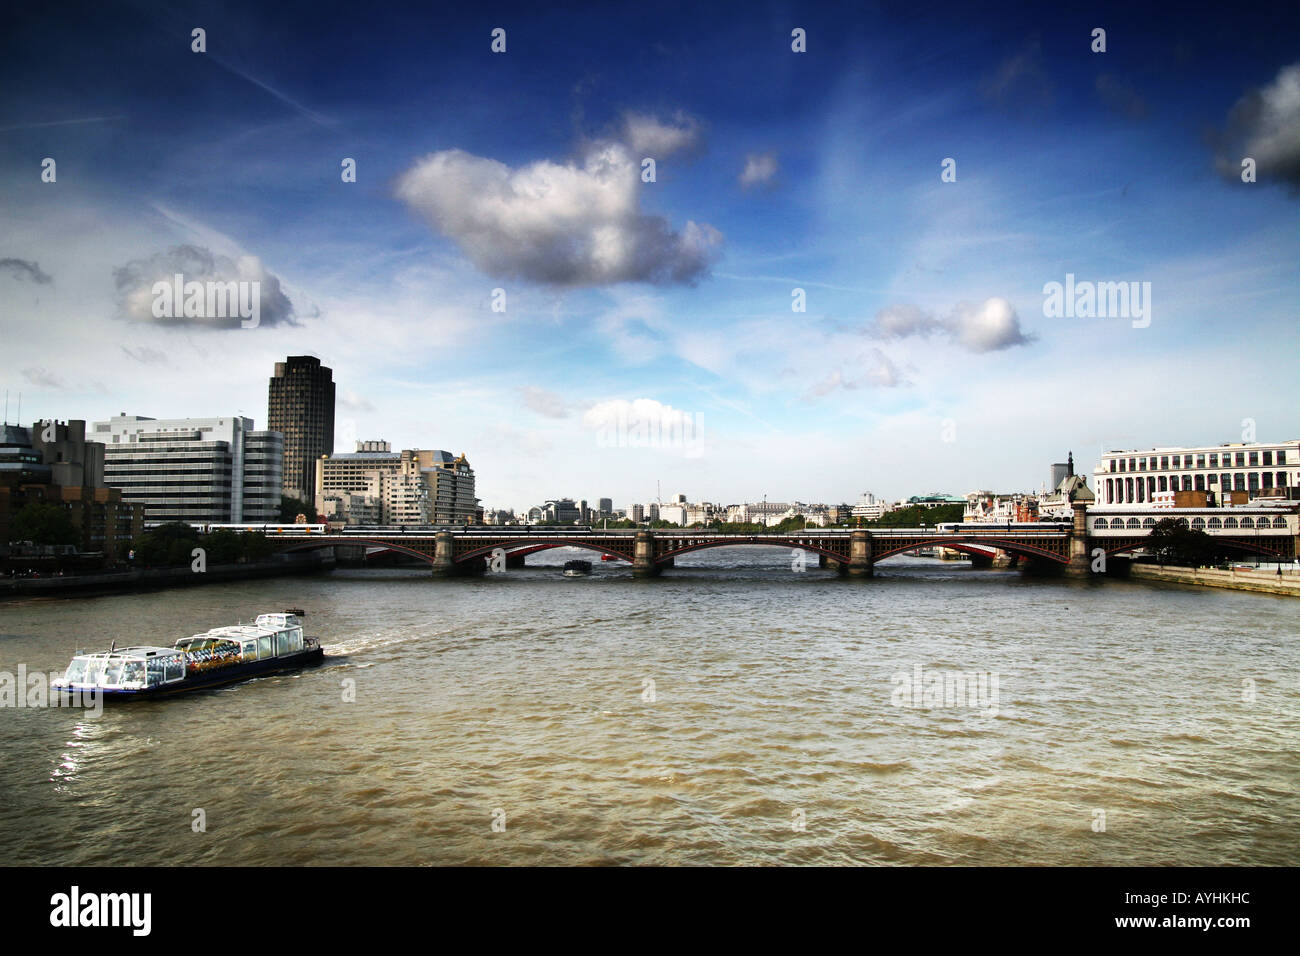 view of  the River Thames and London from the Millennium bridge Stock Photo